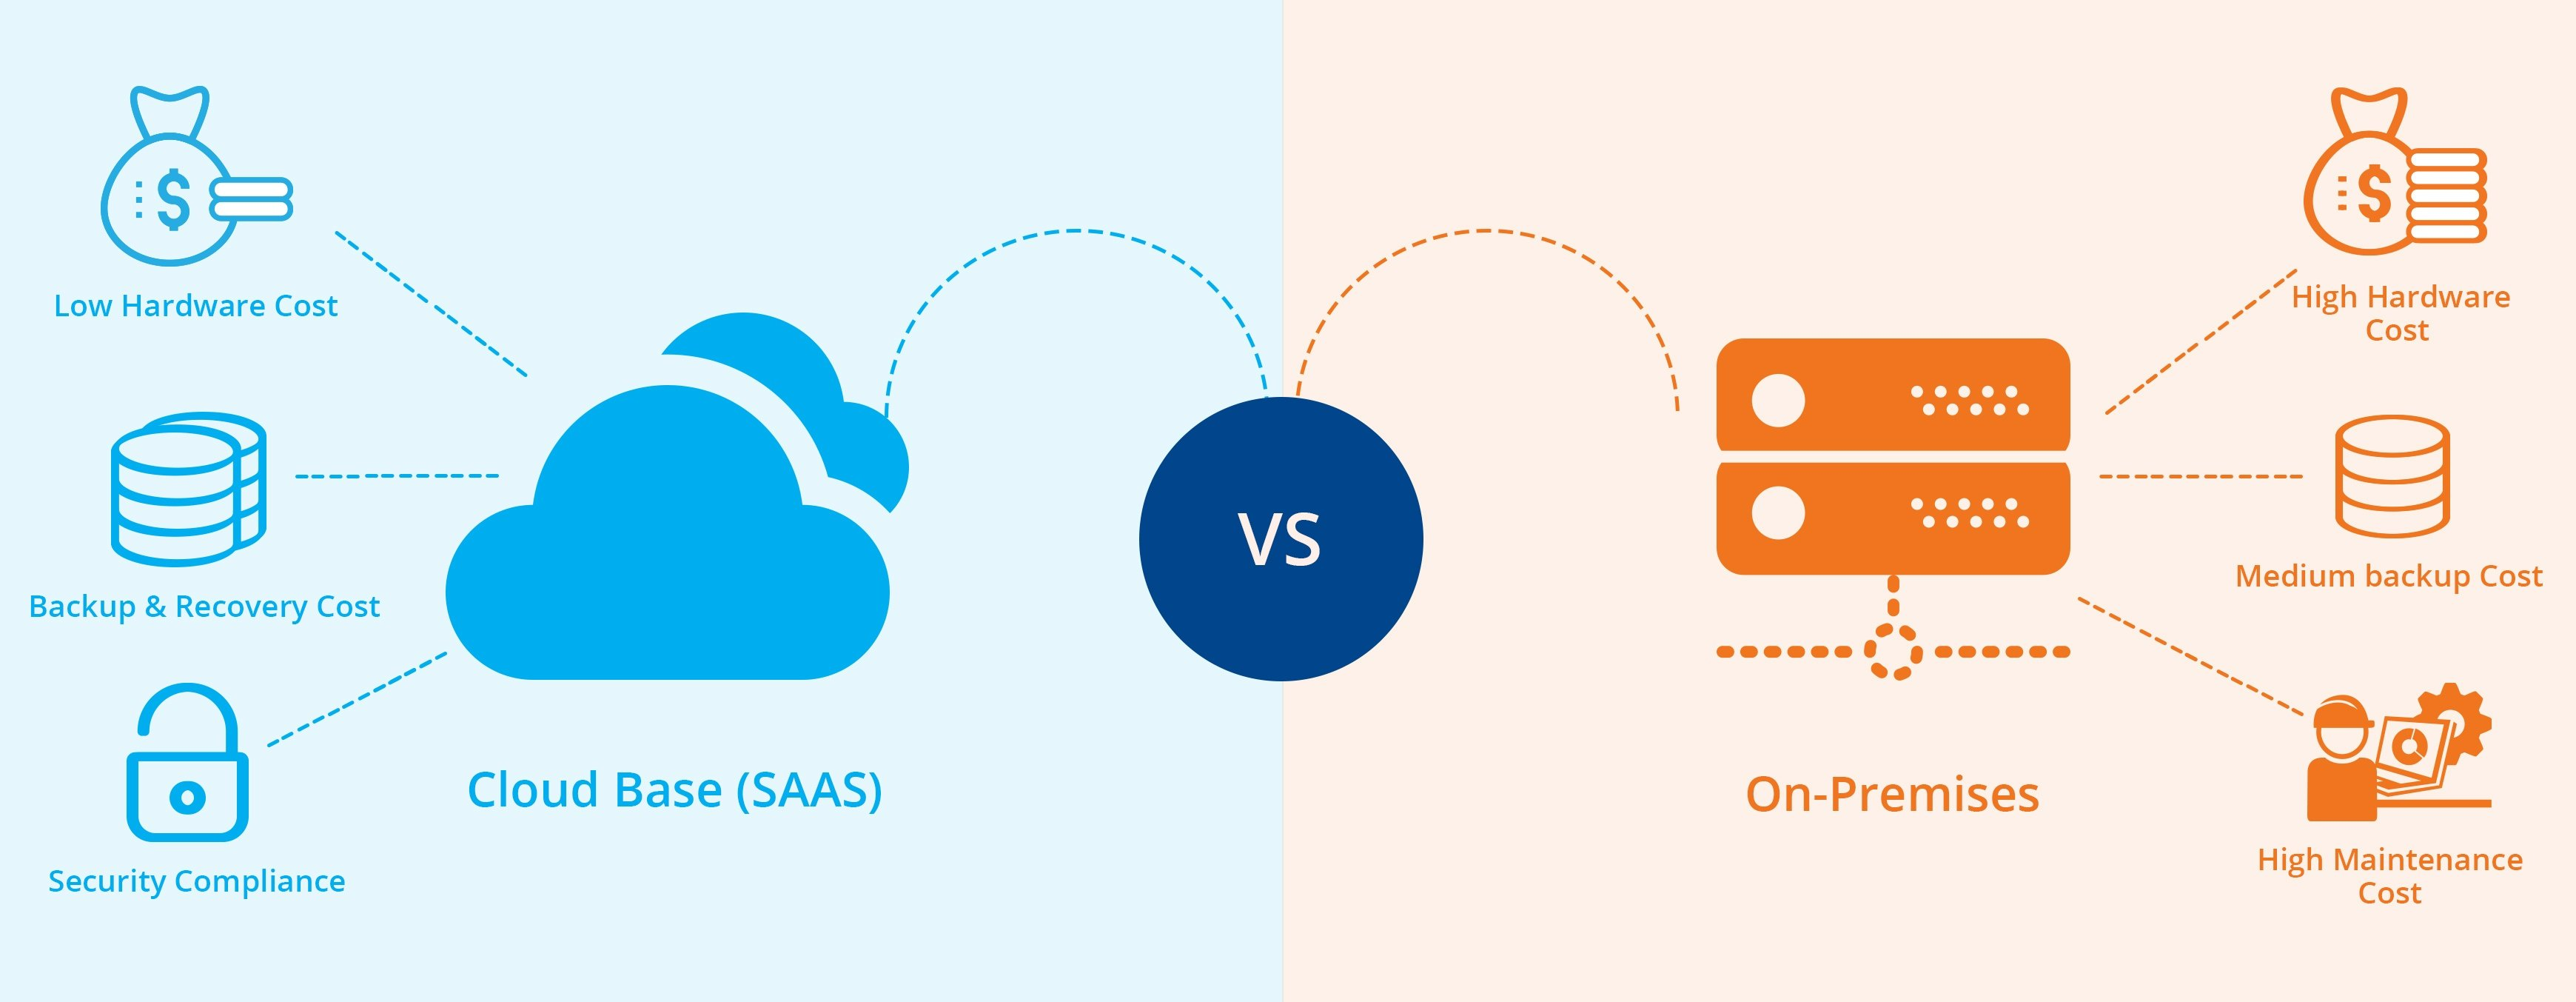 A comparison of video storage on cloud vs. storage on premises.